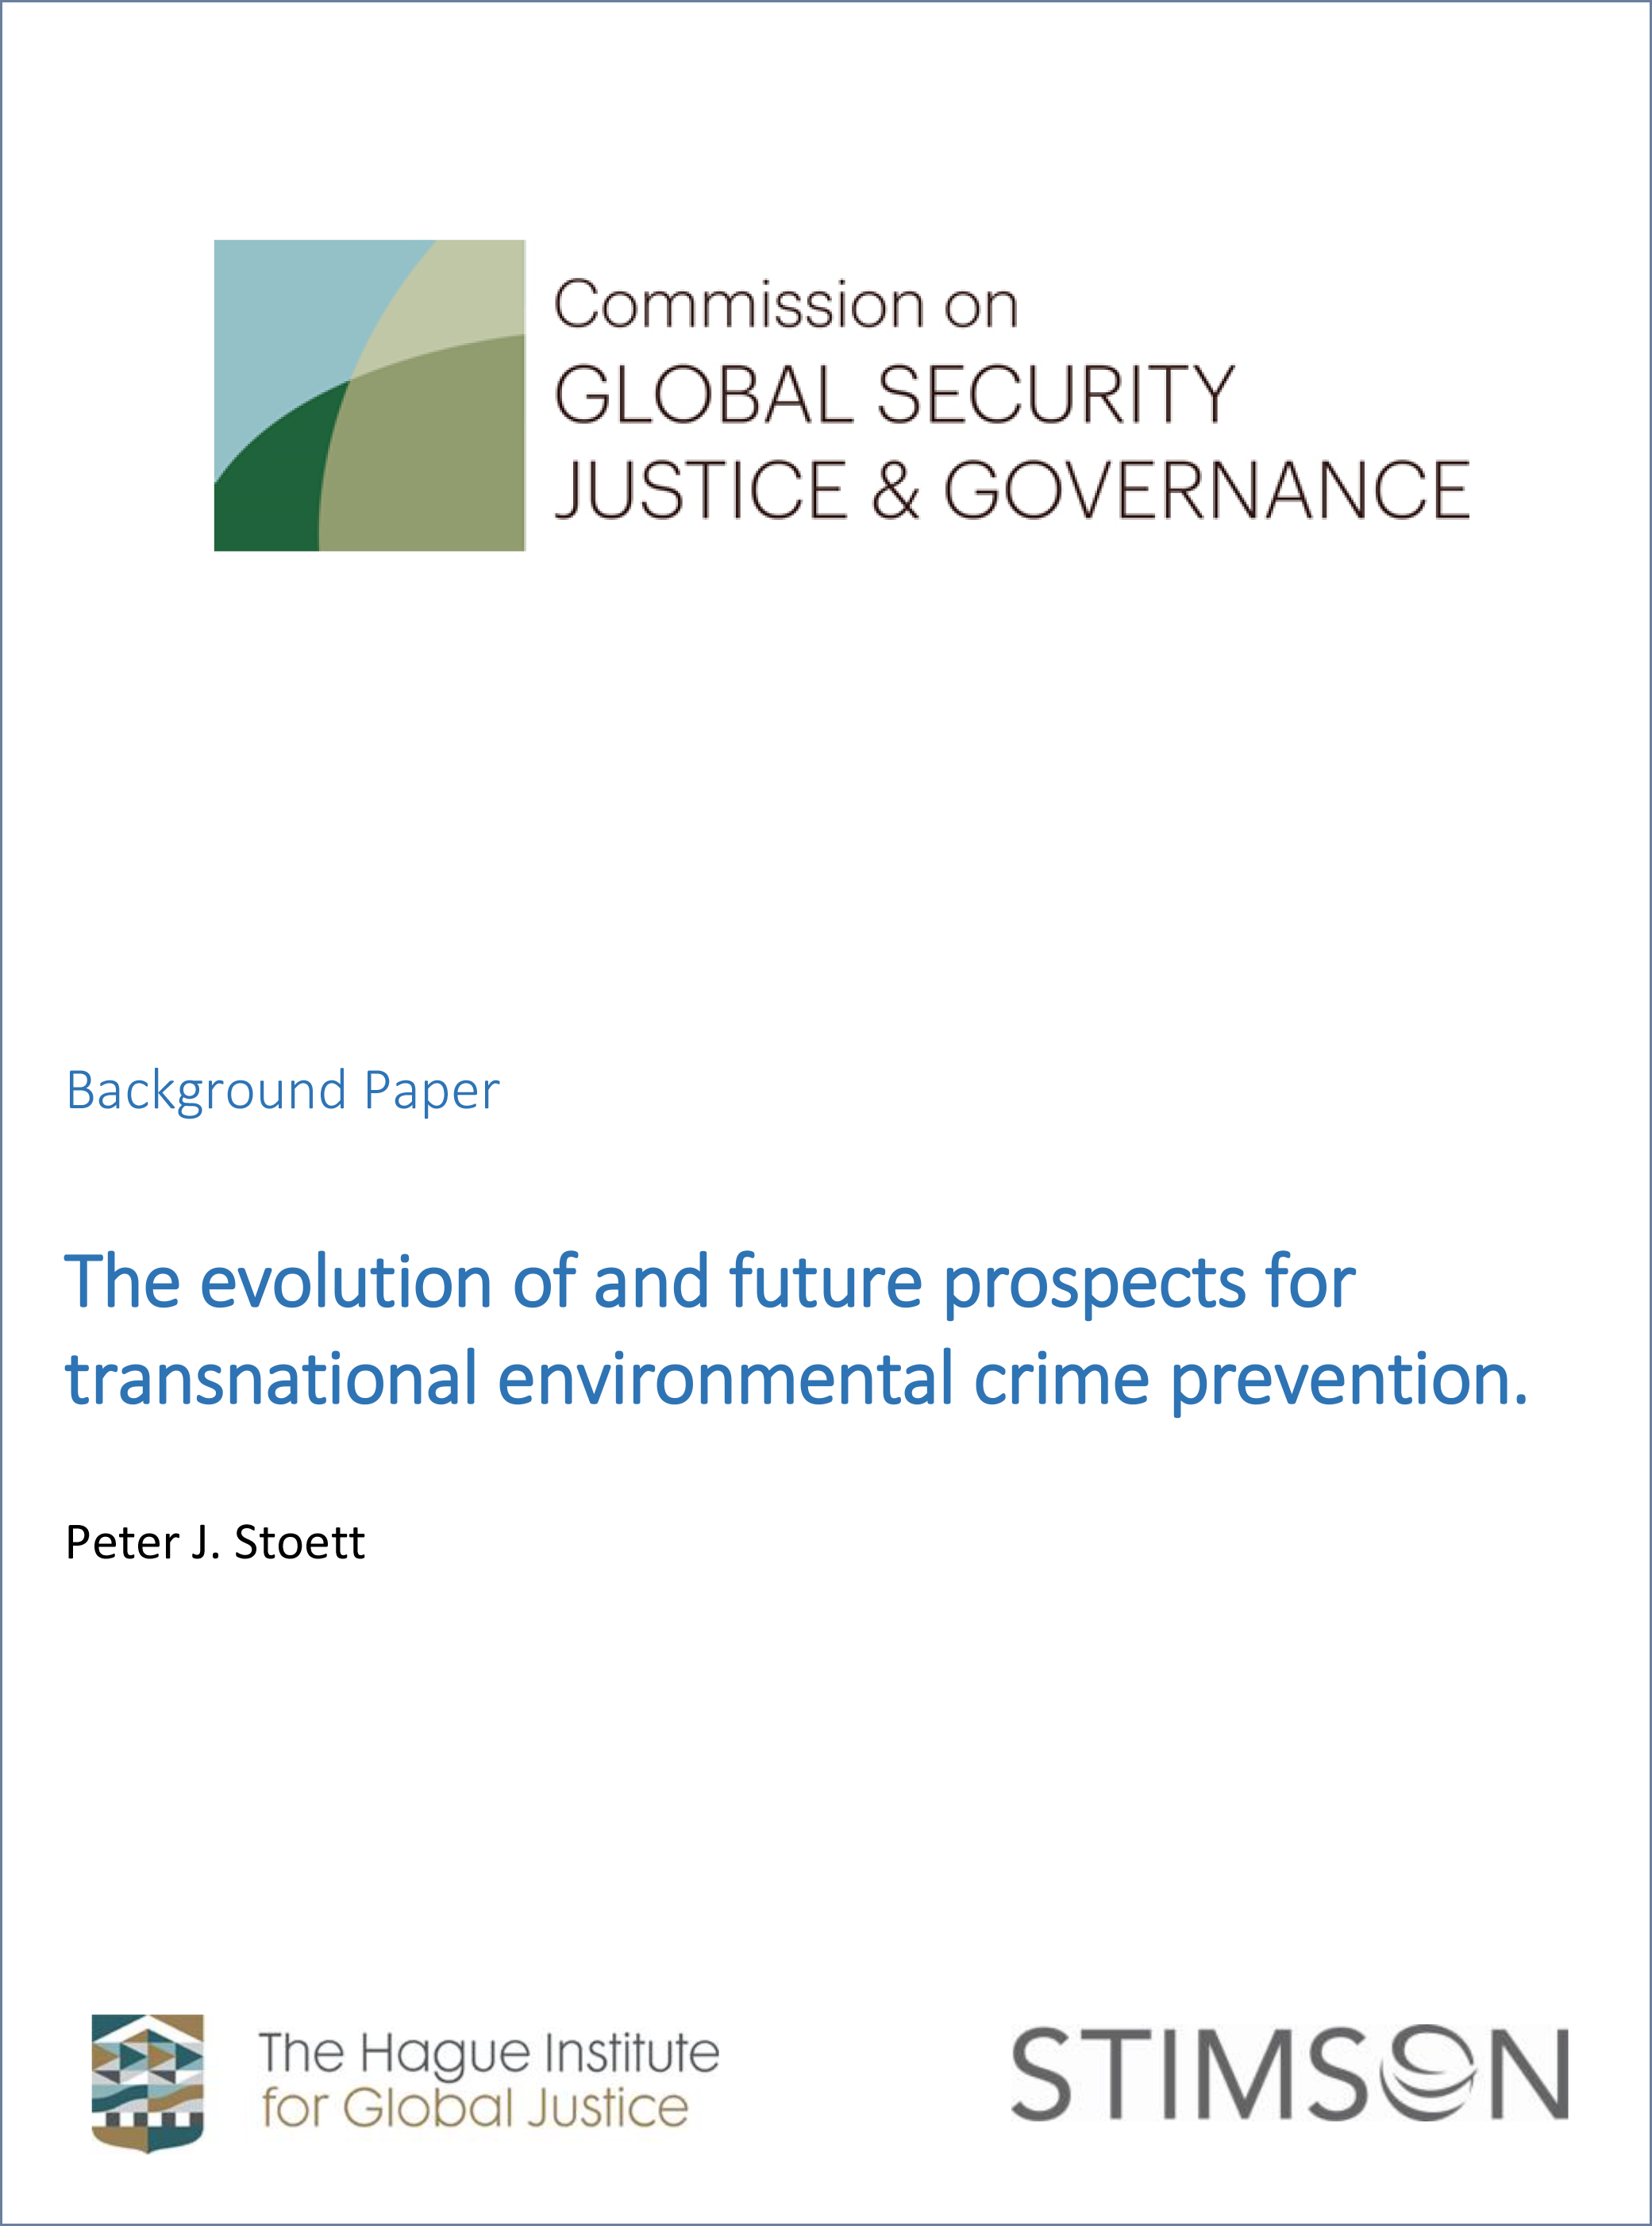 Background-Paper-Peter-Stoett-2015